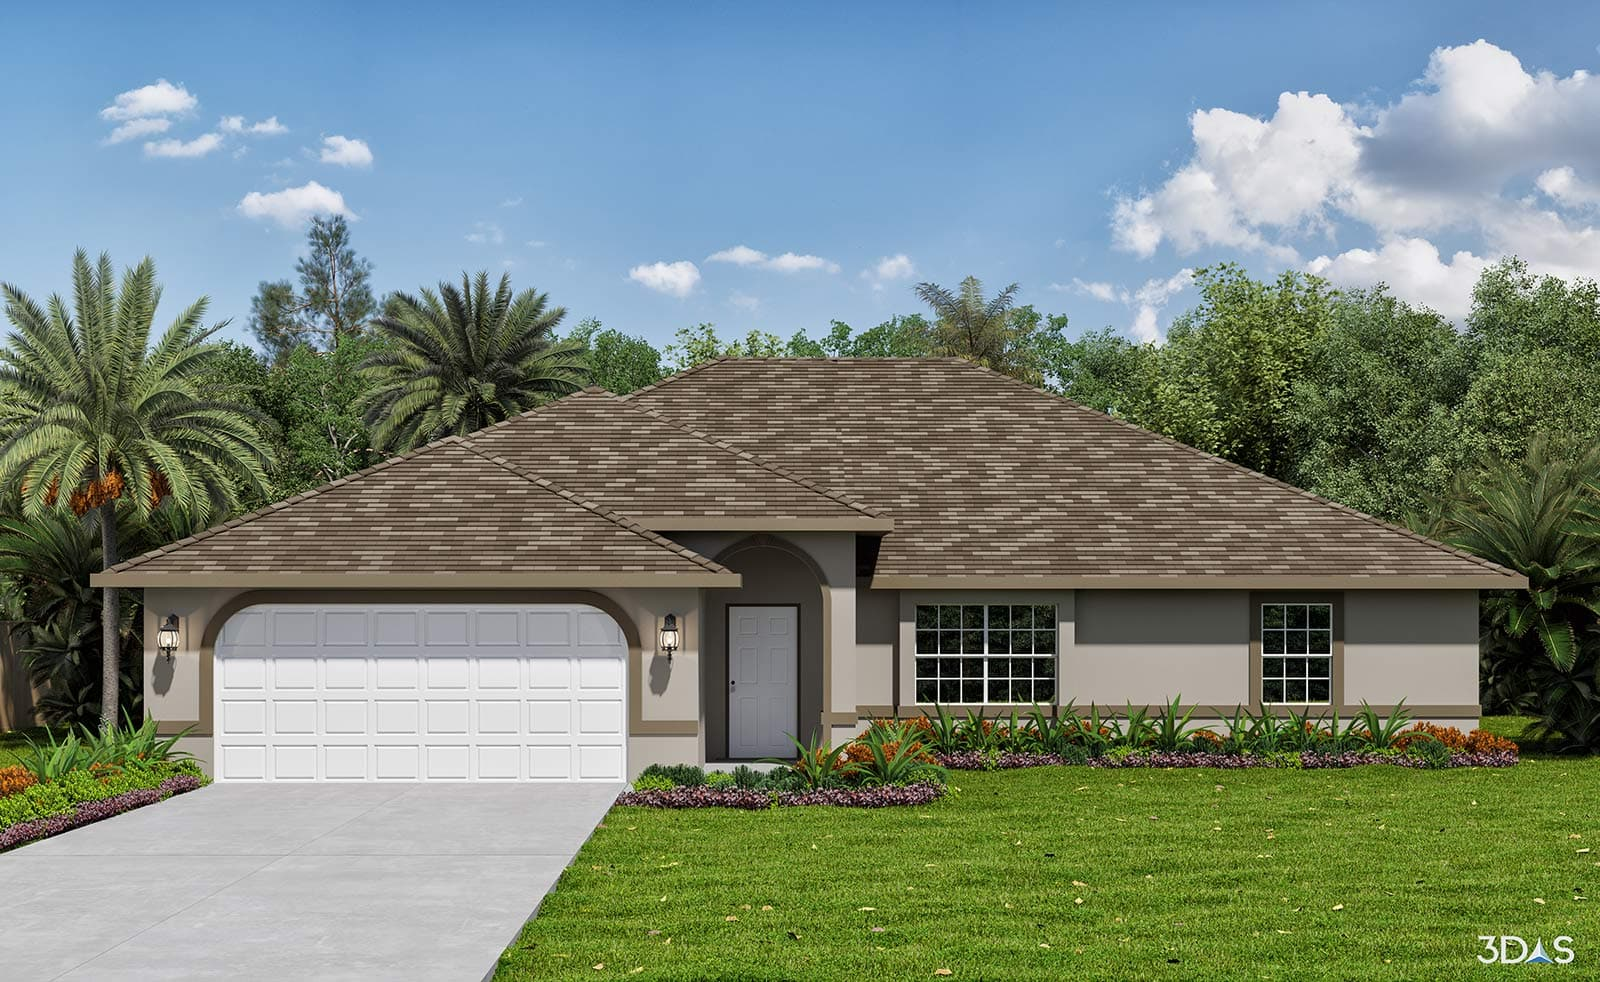 Residential Home 3D Rendering in Tropical Gulf Acres, Punta Gorda, Florida